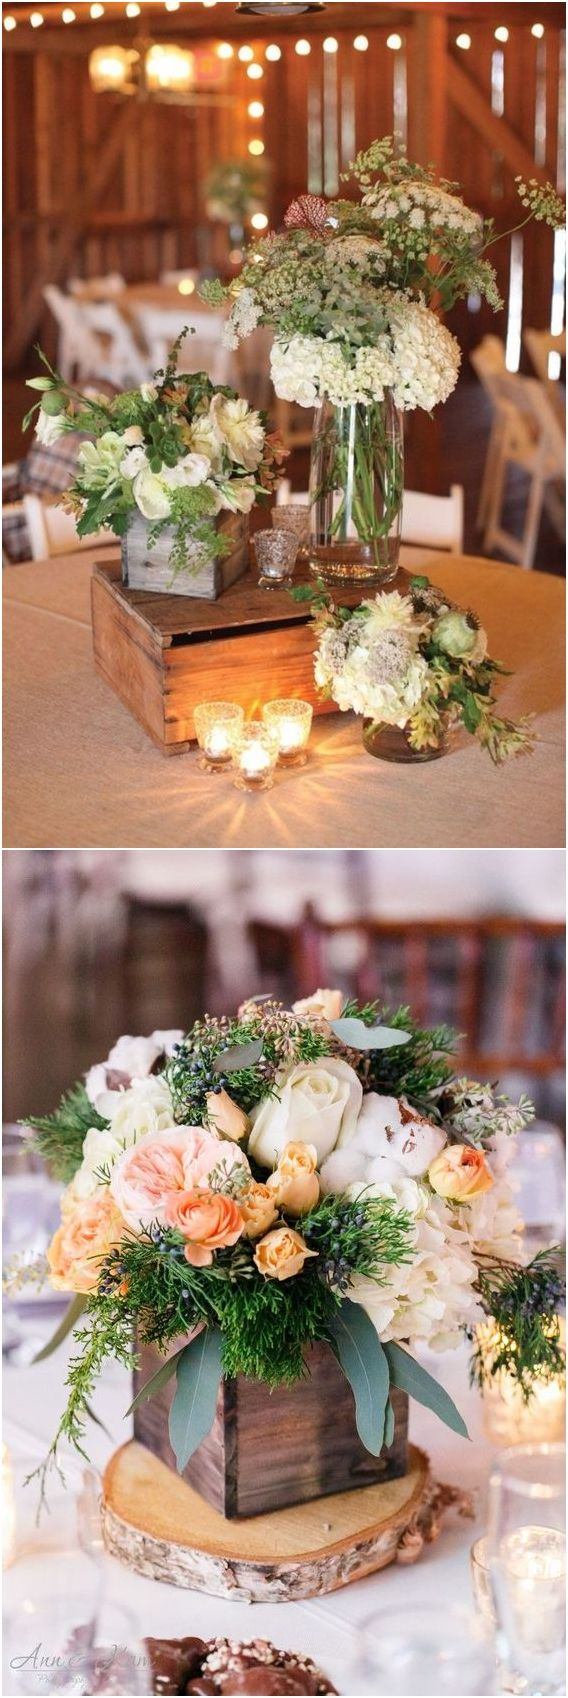 Rustic country wooden crate wedding centerpiece decor ideas / http://www.deerpearlflowers.com/rustic-woodsy-wedding-trend-2018-wooden-crates/ #rusticweddings #countryweddings